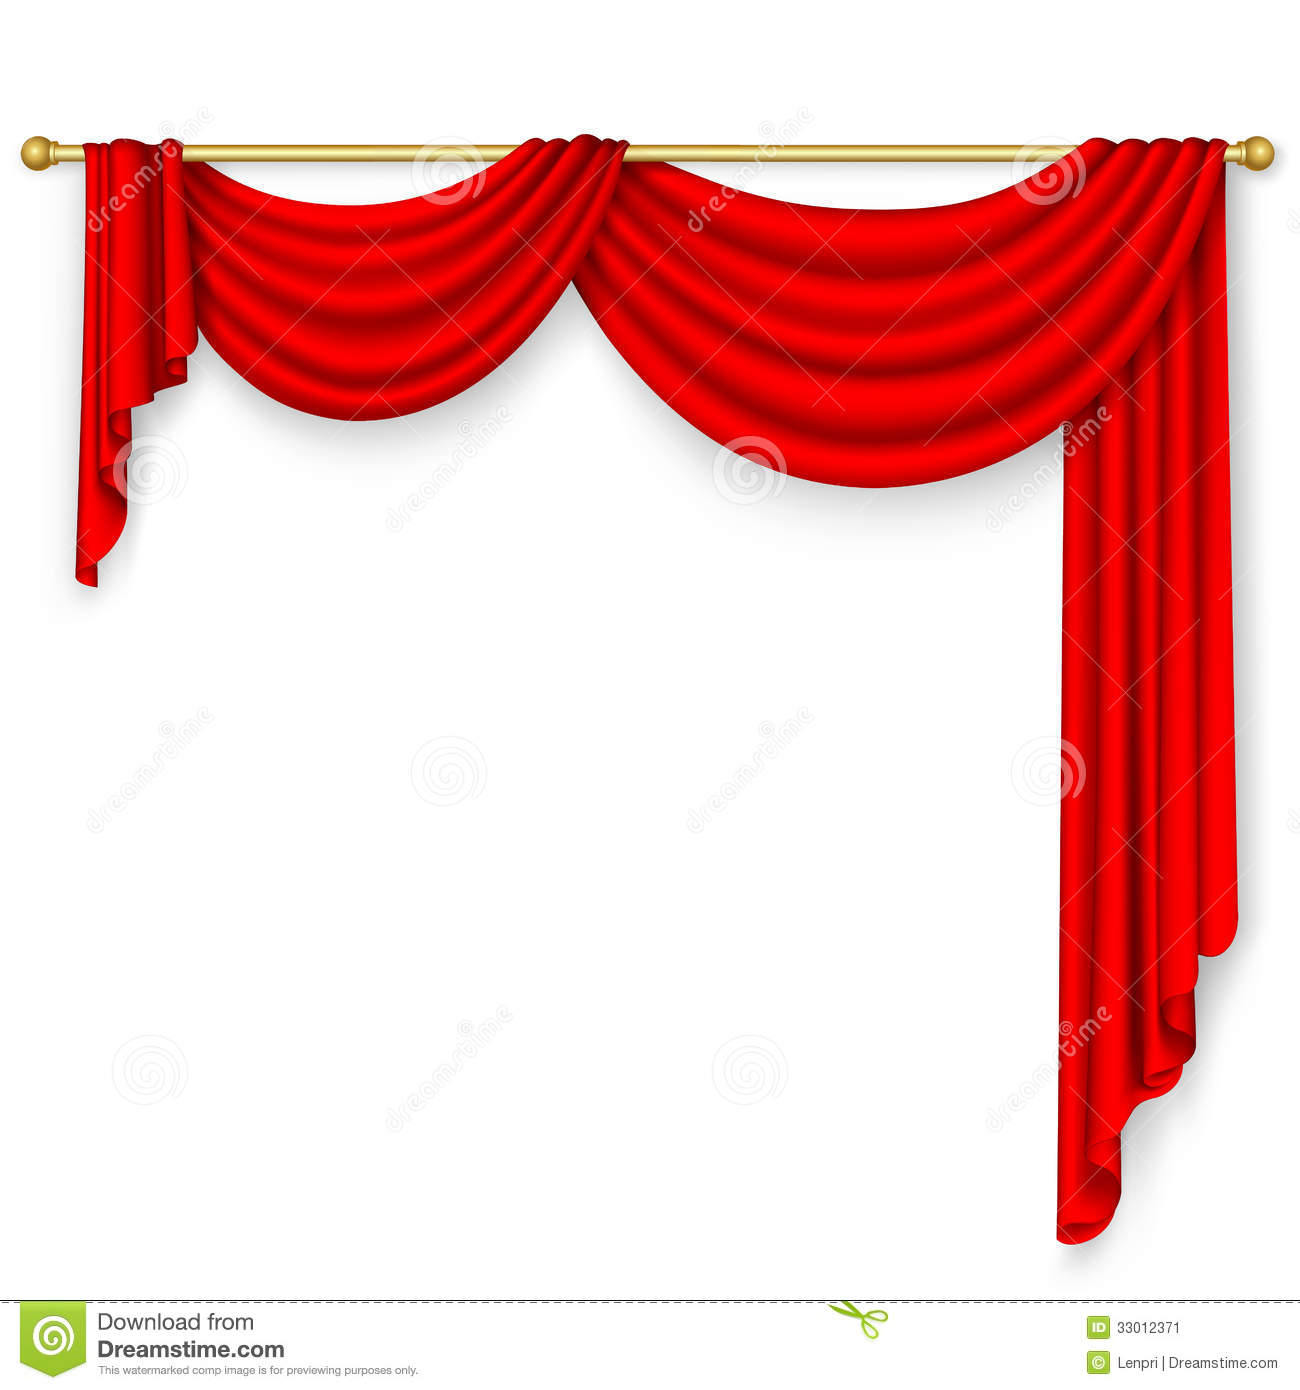 Red curtain stock vector. Illustration of curtain, rope - 33012371 for Red Curtain Background Powerpoint  75sfw